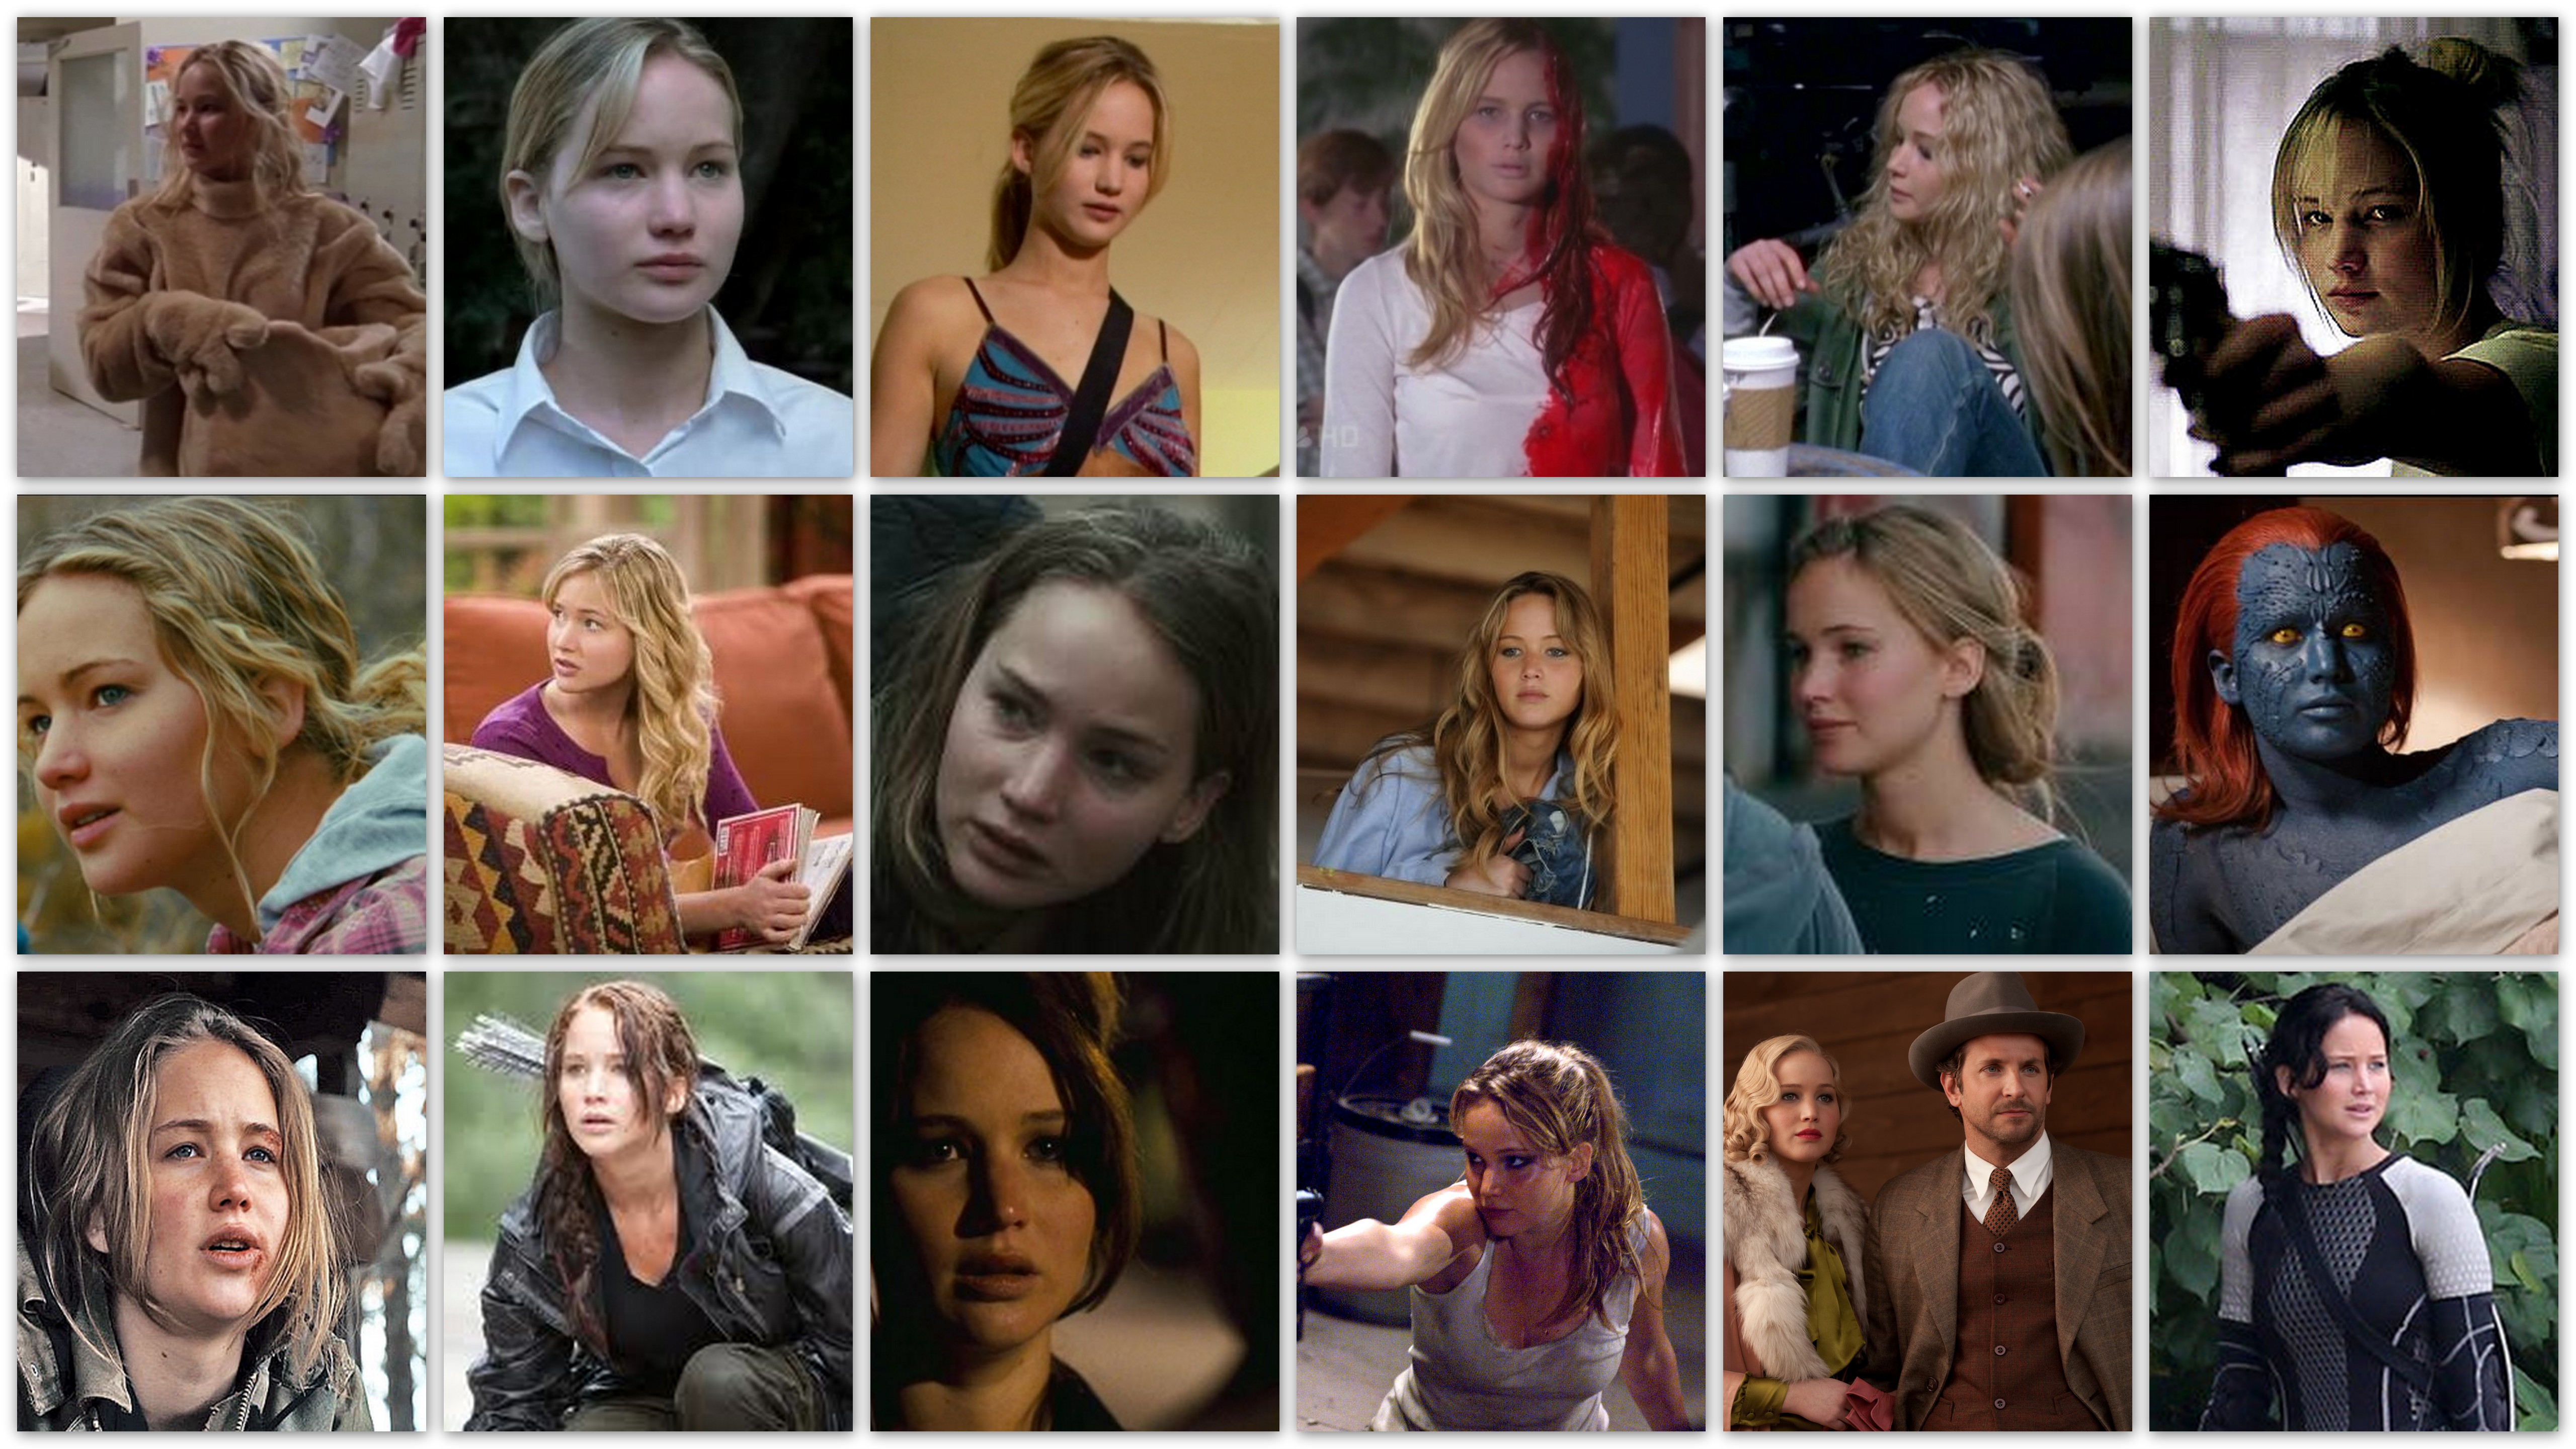 Overview of the roles of Jennifer Lawrence